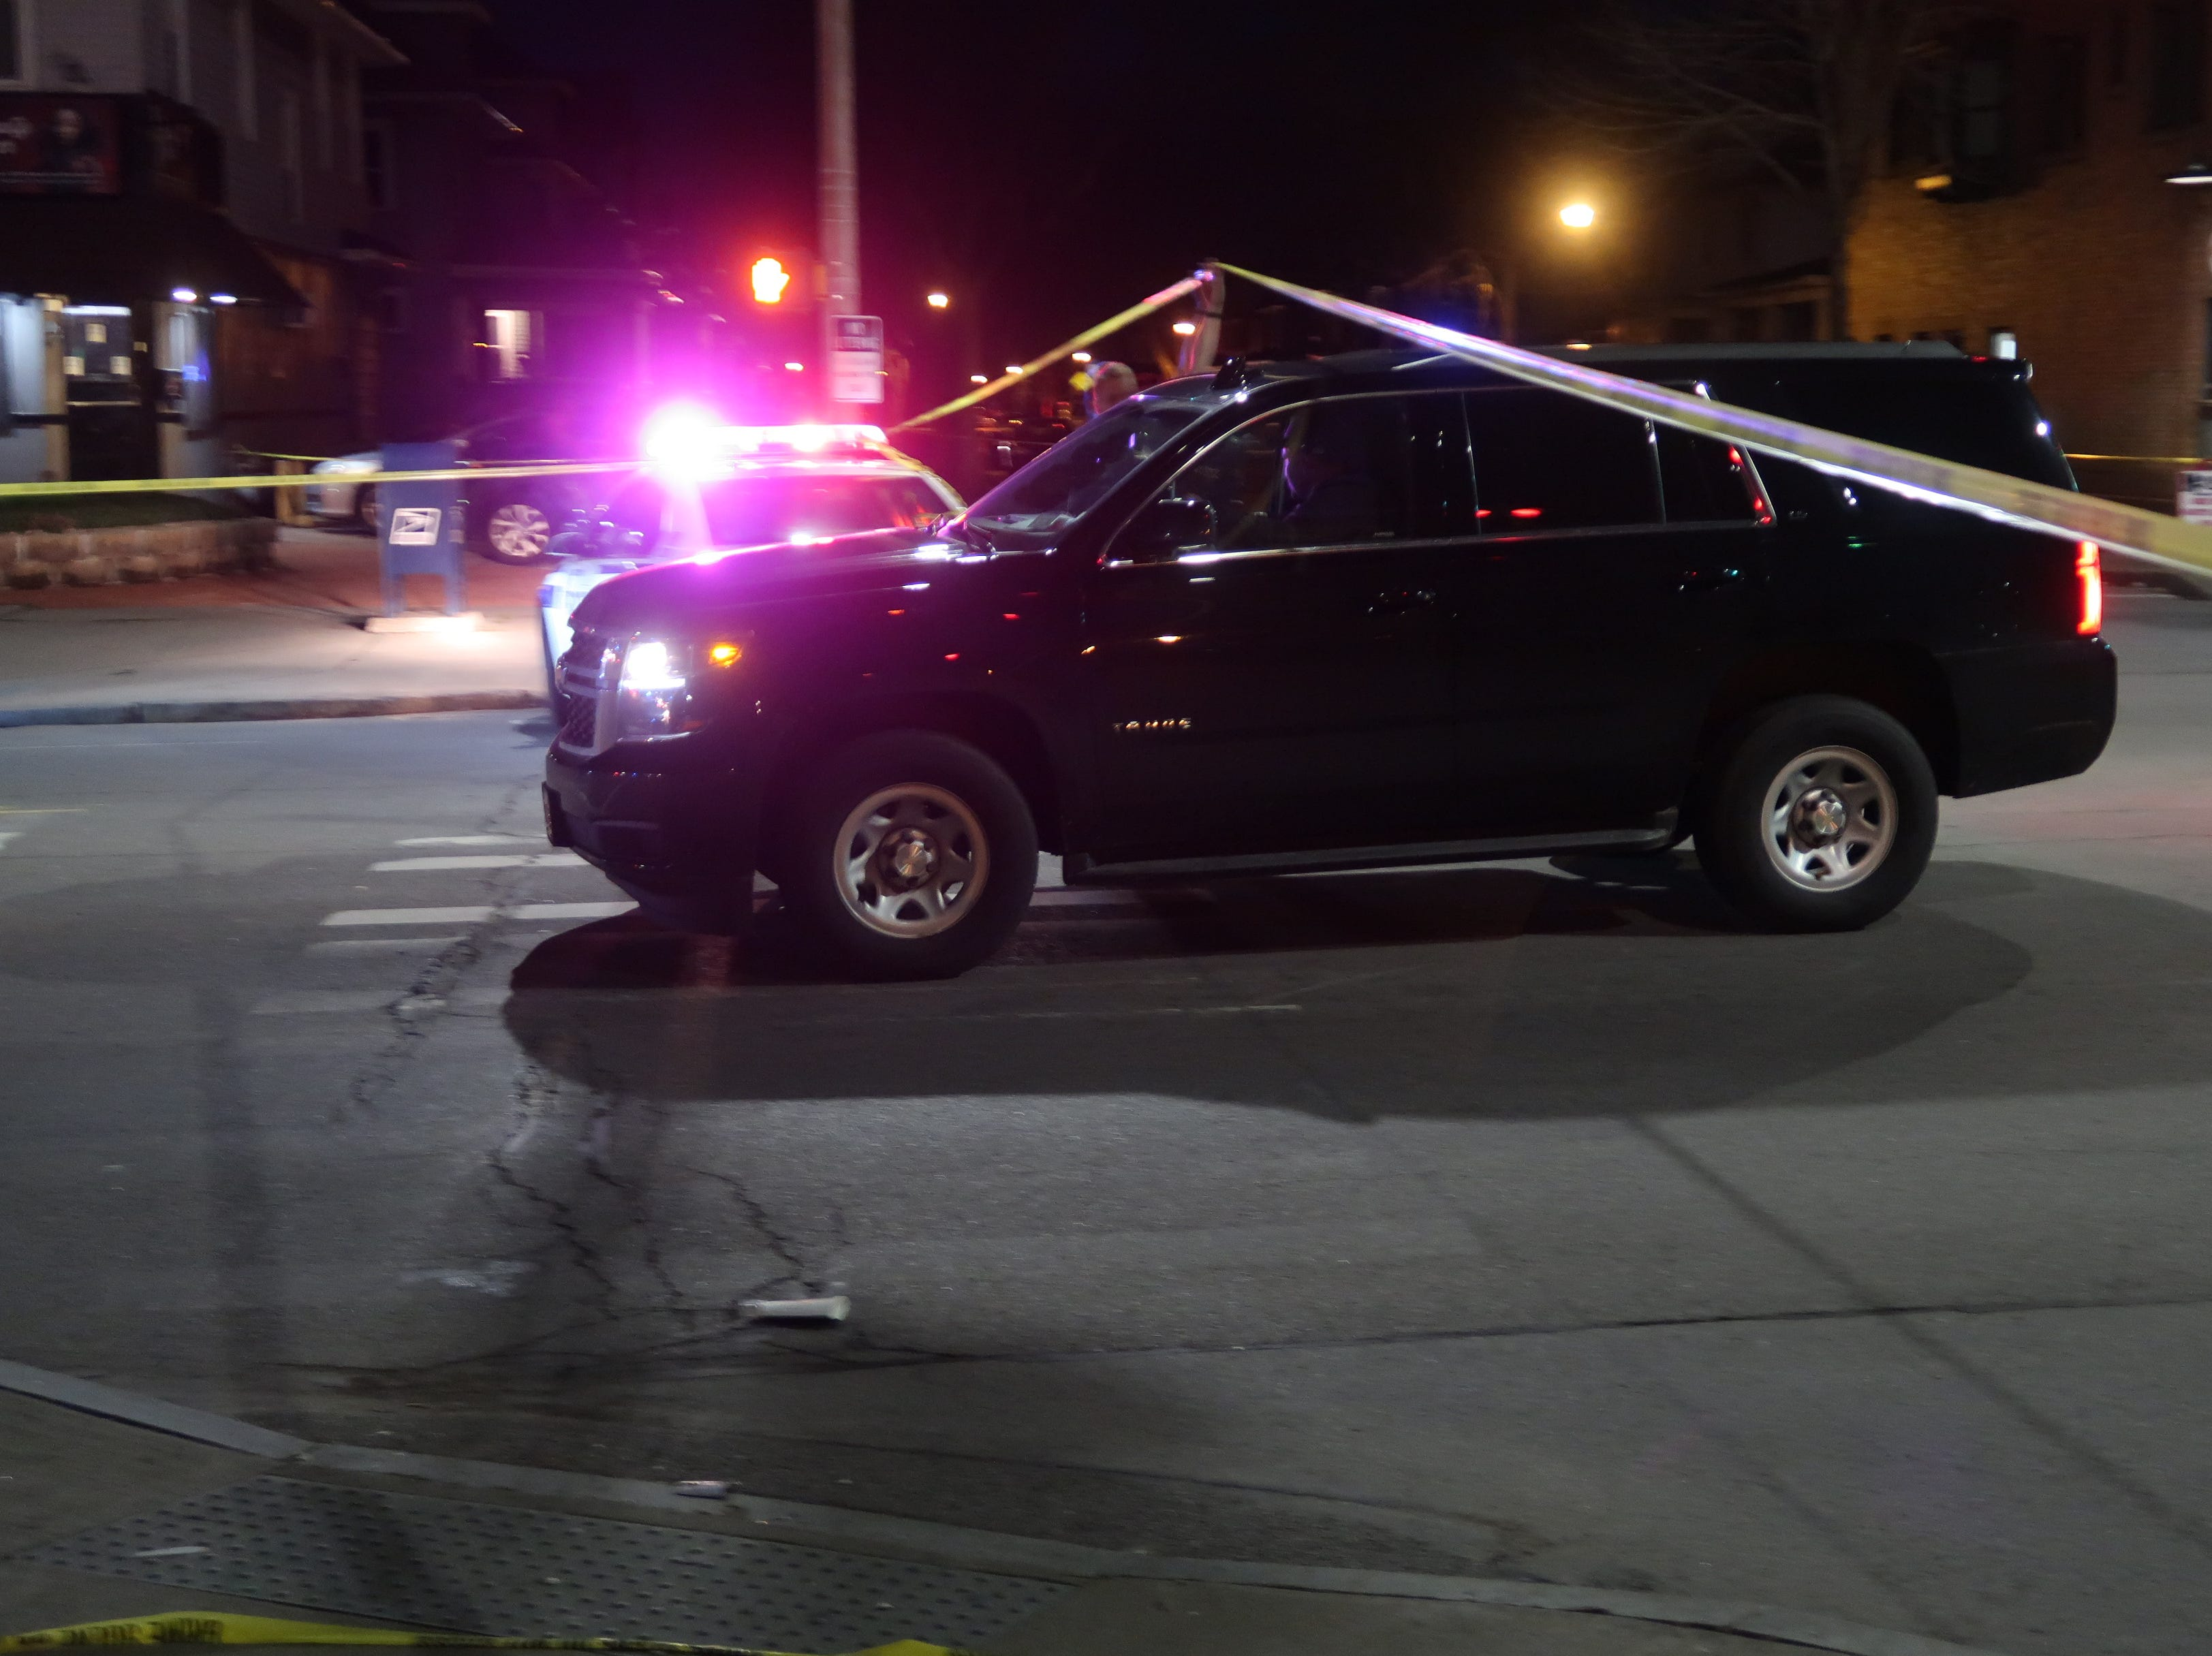 First Assistant District Attorney Perry Duckles arrives at a homicide scene late Saturday night in Rochester's Maplewood neighborhood.